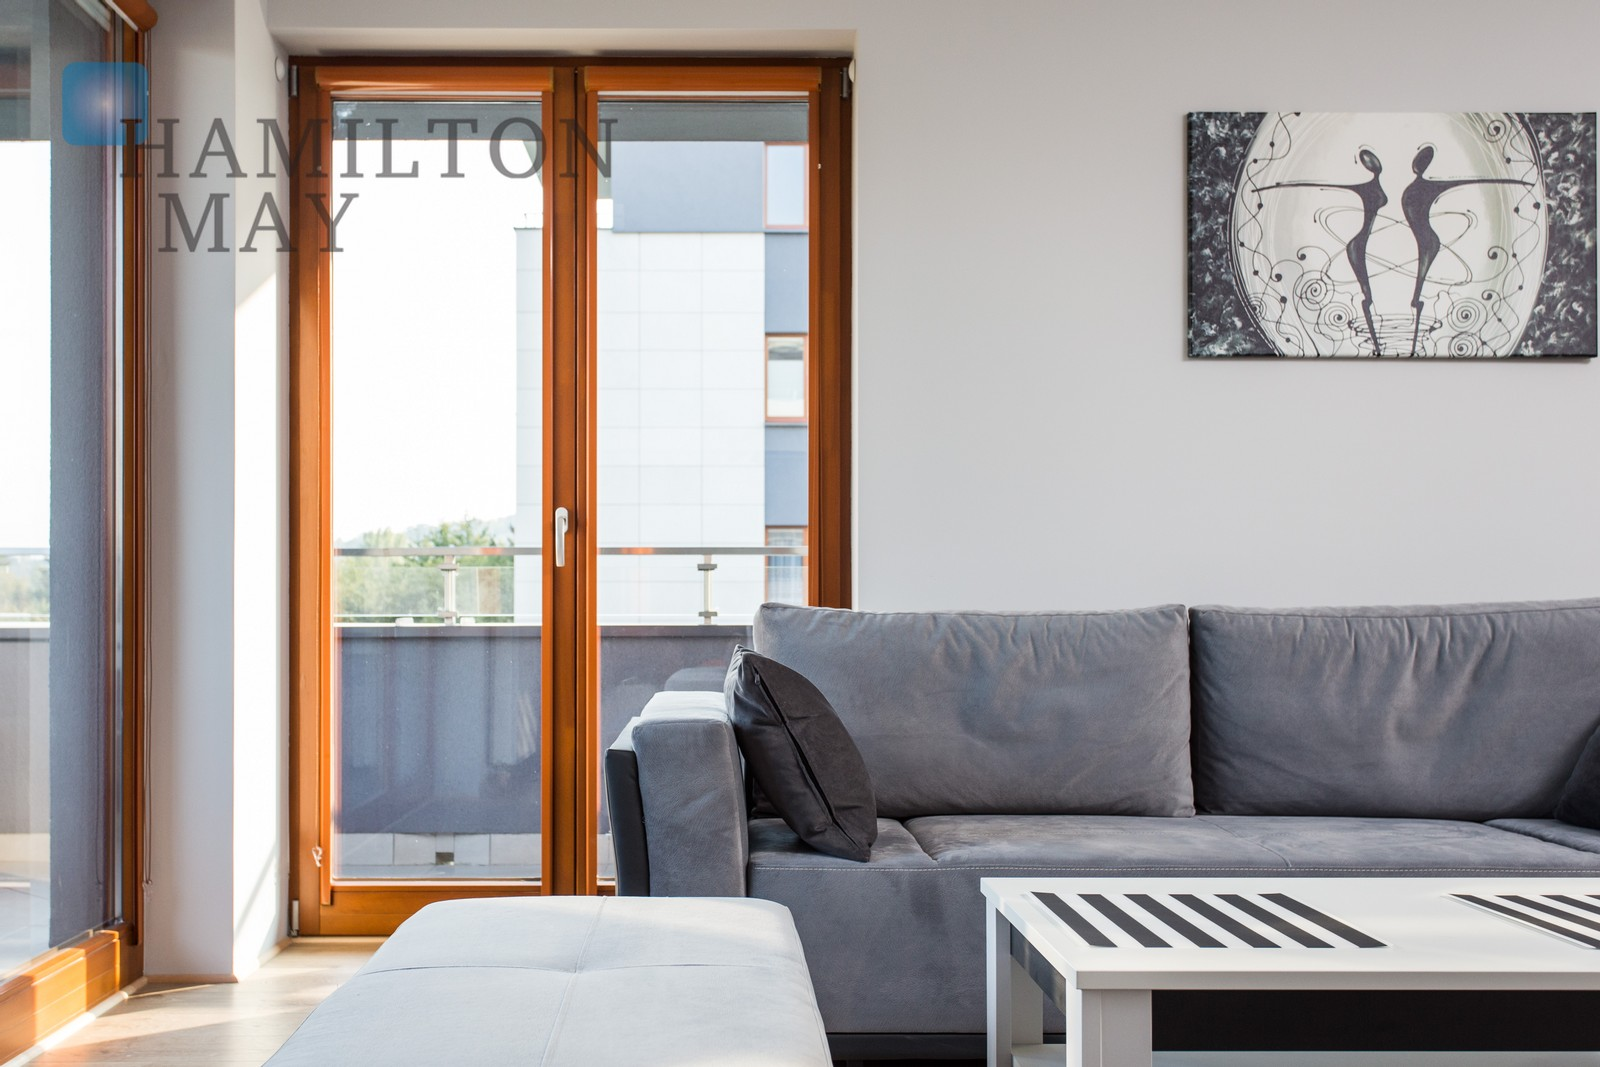 Modern, comfortable apartment in the Małe Błonia investment by the center of Kraków Krakow for rent